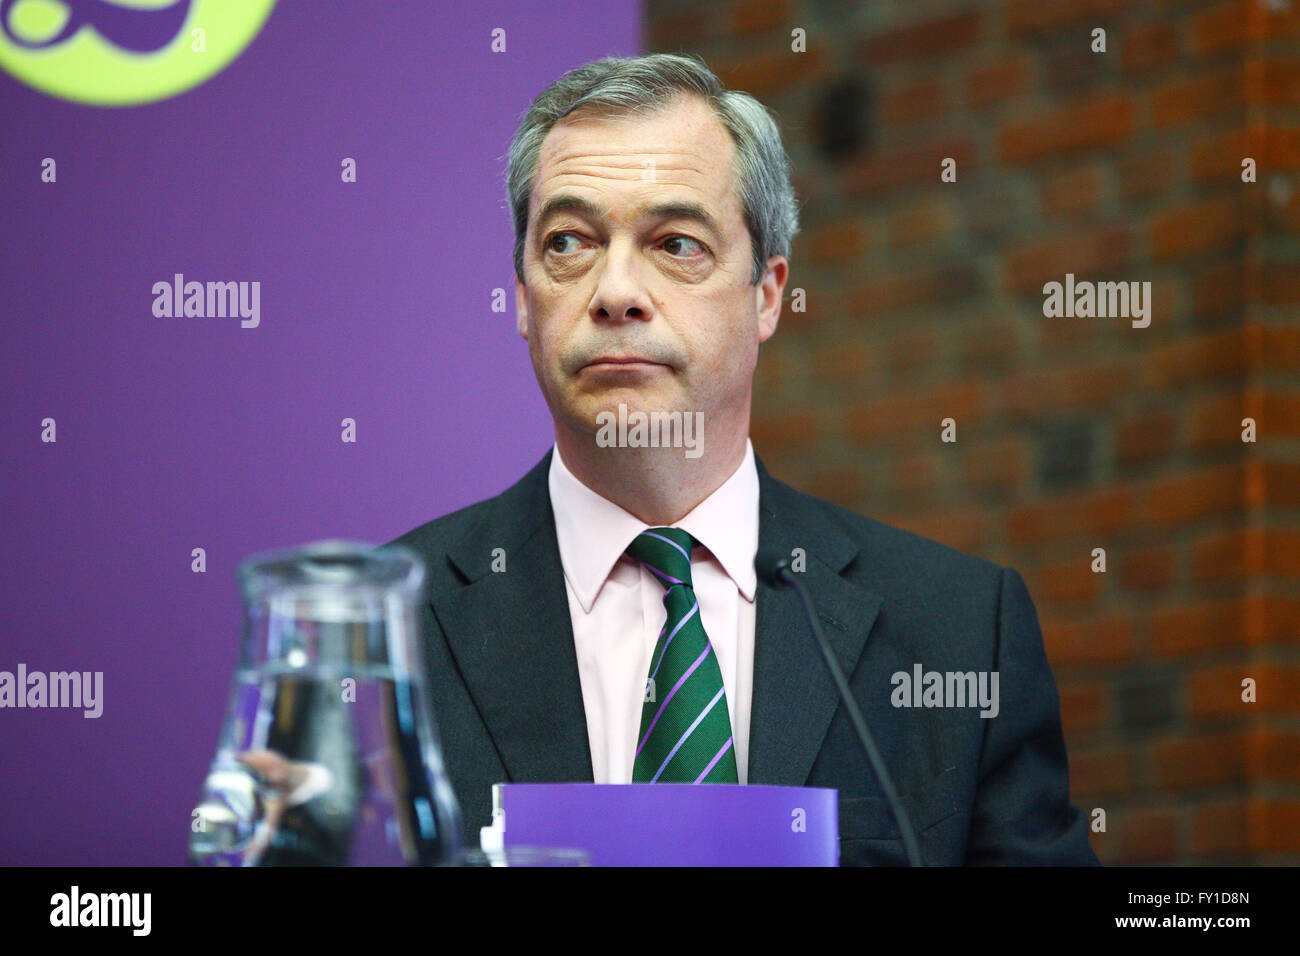 London, UK. 19th April, 2016. UKIP leader Nigel Farage joins Peter Whittle, London Mayoral candidate and the UKIP - Stock Image